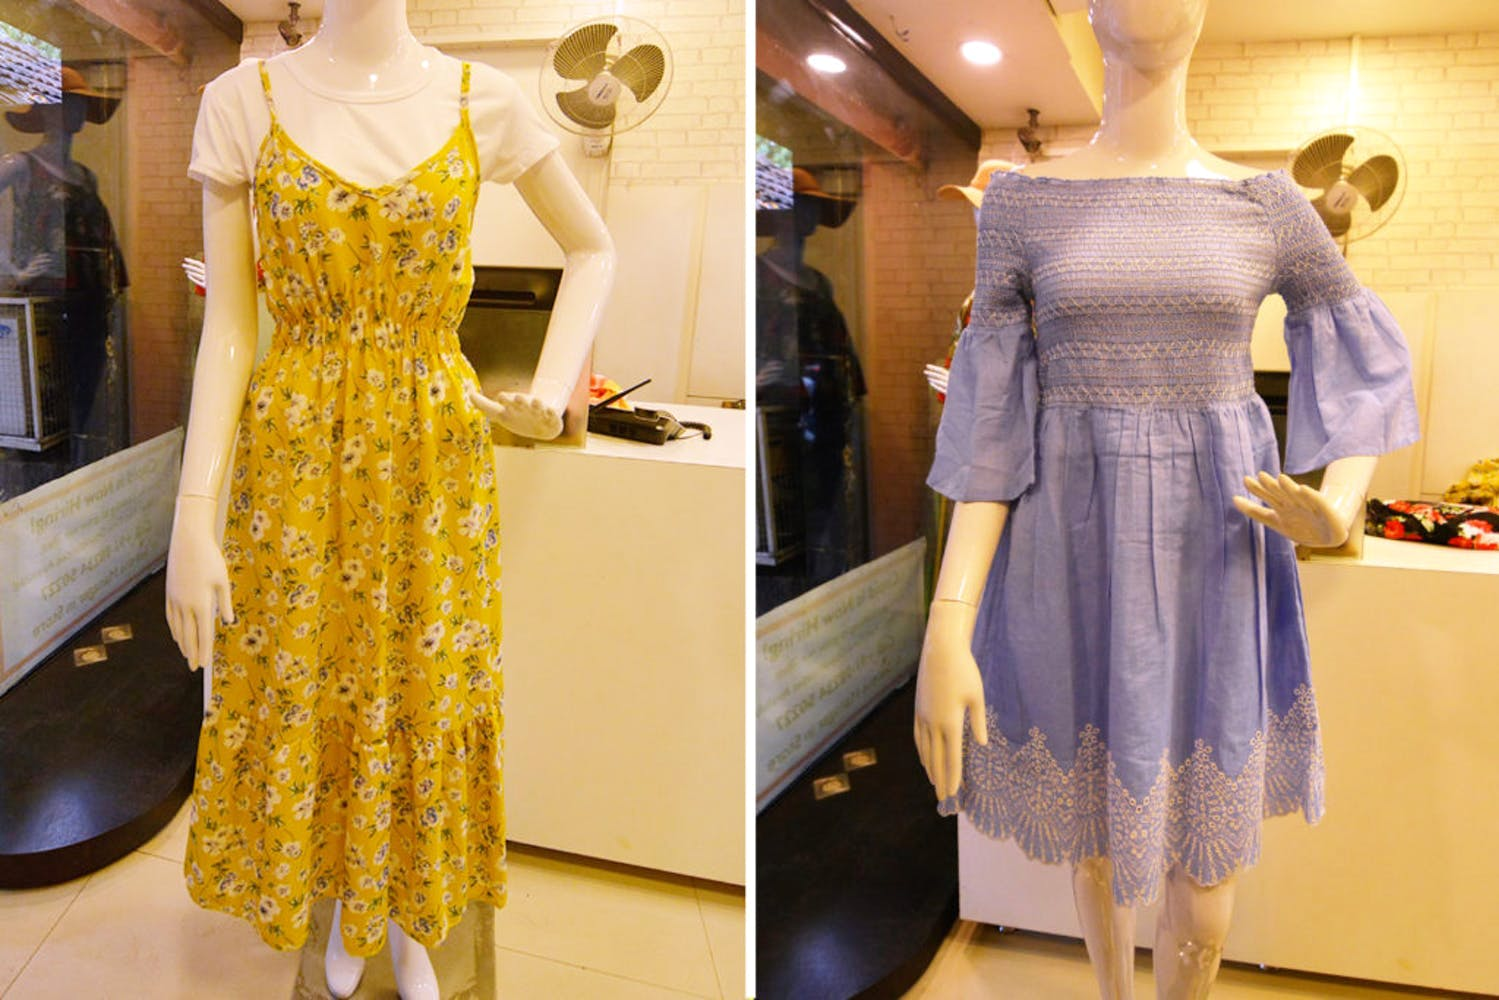 Clothing,Dress,Boutique,Yellow,Day dress,Fashion,Costume design,Cocktail dress,Fashion design,Sleeve